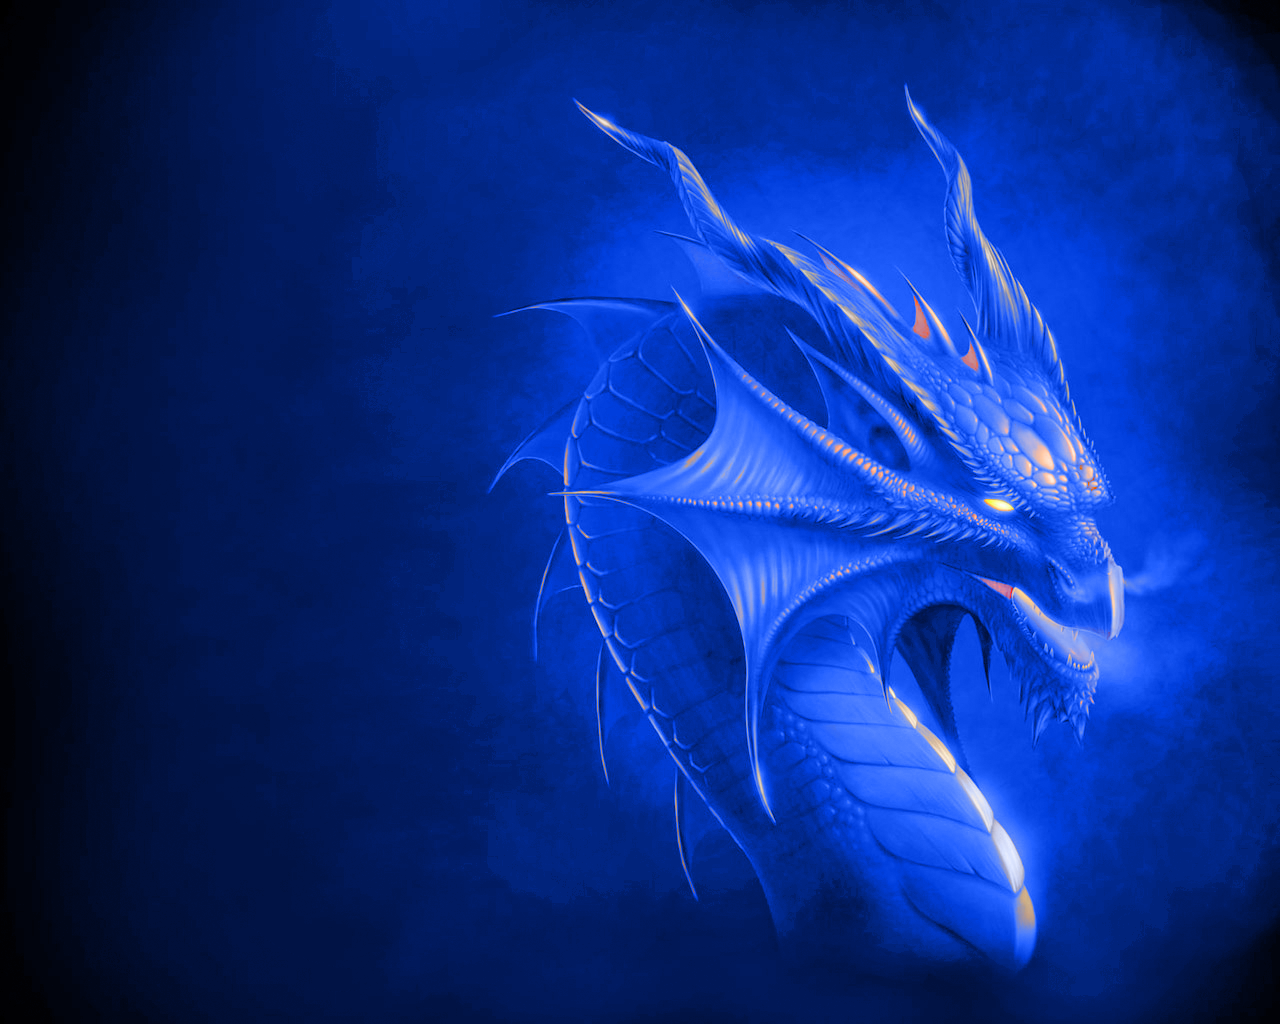 The Blue Dragon Wallpapers